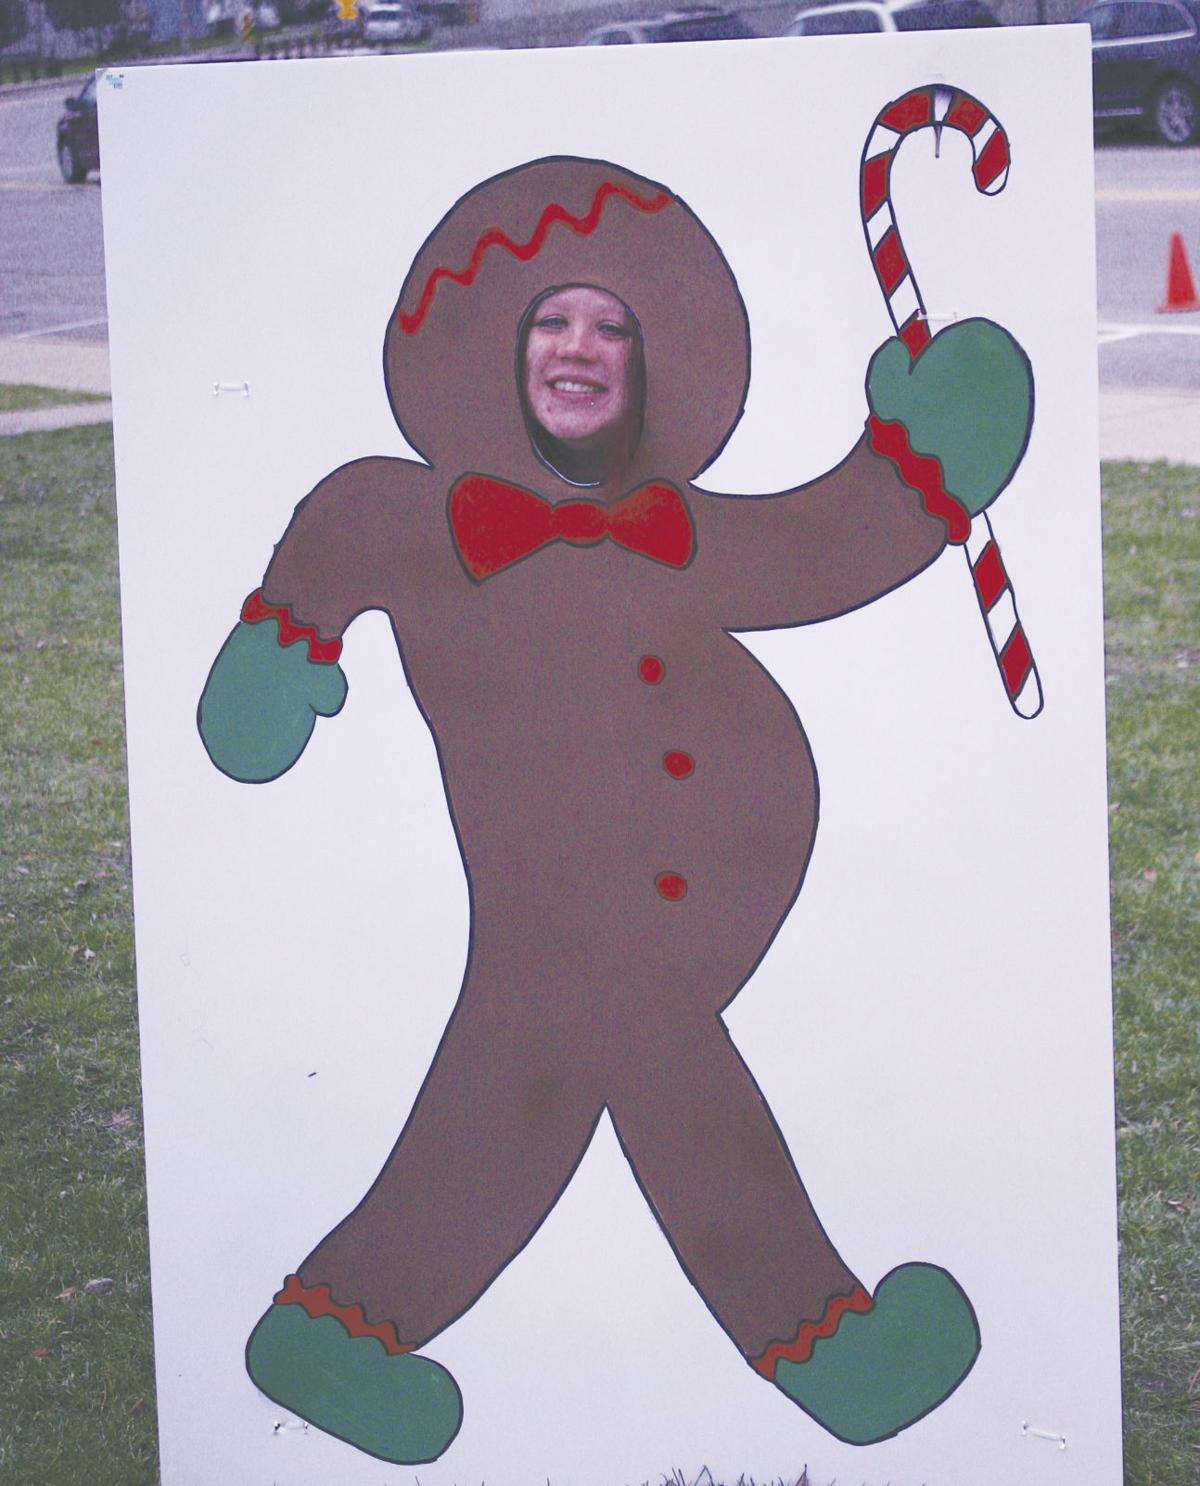 Britany Derr had some fun getting into character as a gingerbread woman.